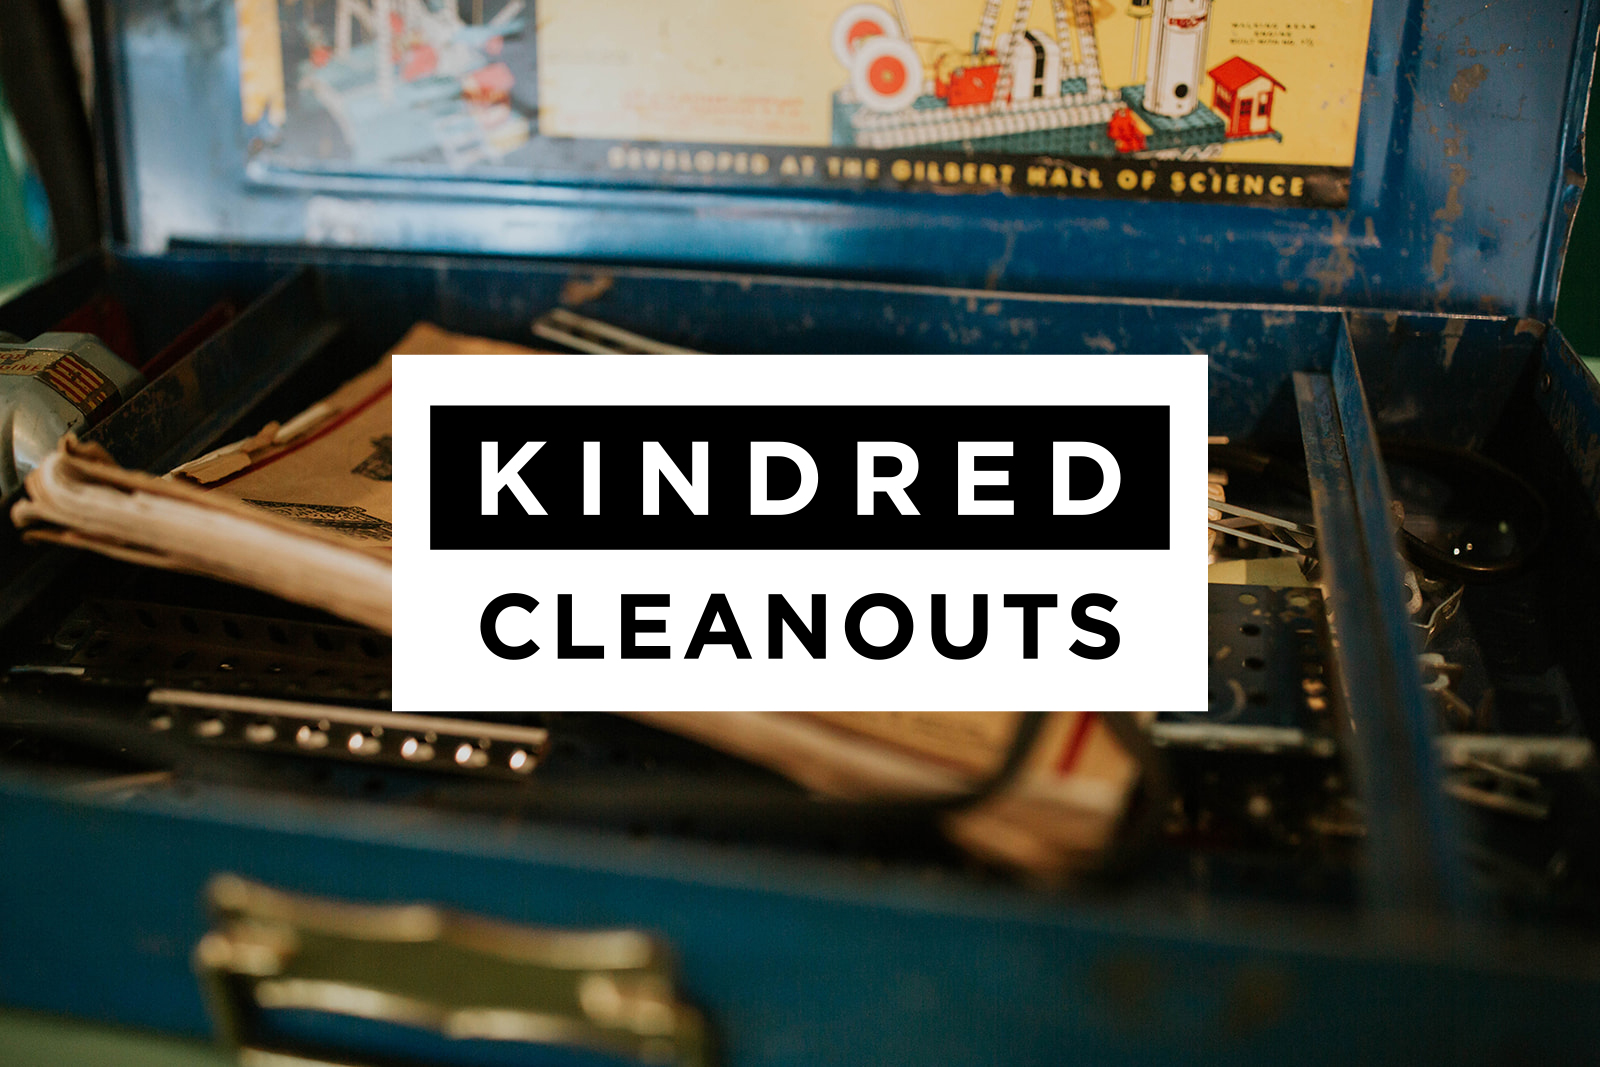 Kindred home cleanouts - We offer home cleanouts to clients after hosting an estate sale or in lieu of doing a sale. This can include removing all items on the property or only specific items. If you require everything to be removed, our team will pack up and deliver items to their appropriate locations (donation, storefront, or trash.) Our goal is to custom tailor the removal services based on what works best for you.